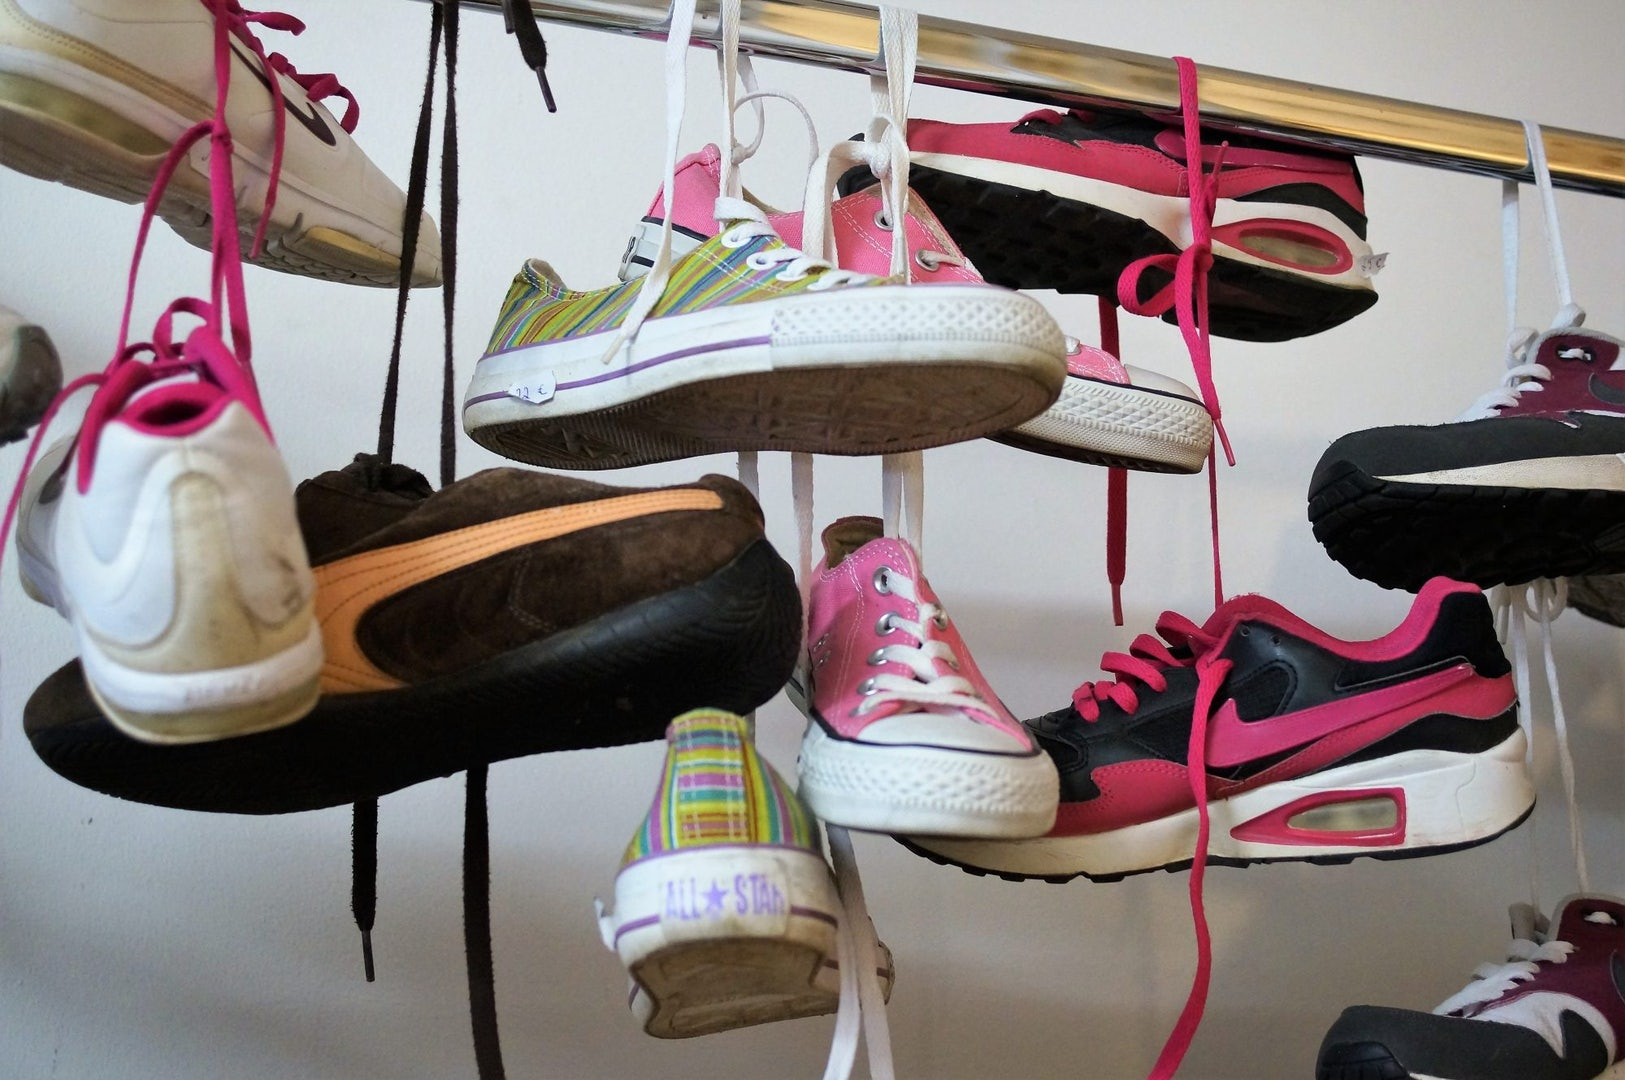 secondhand shoes at Think Twice